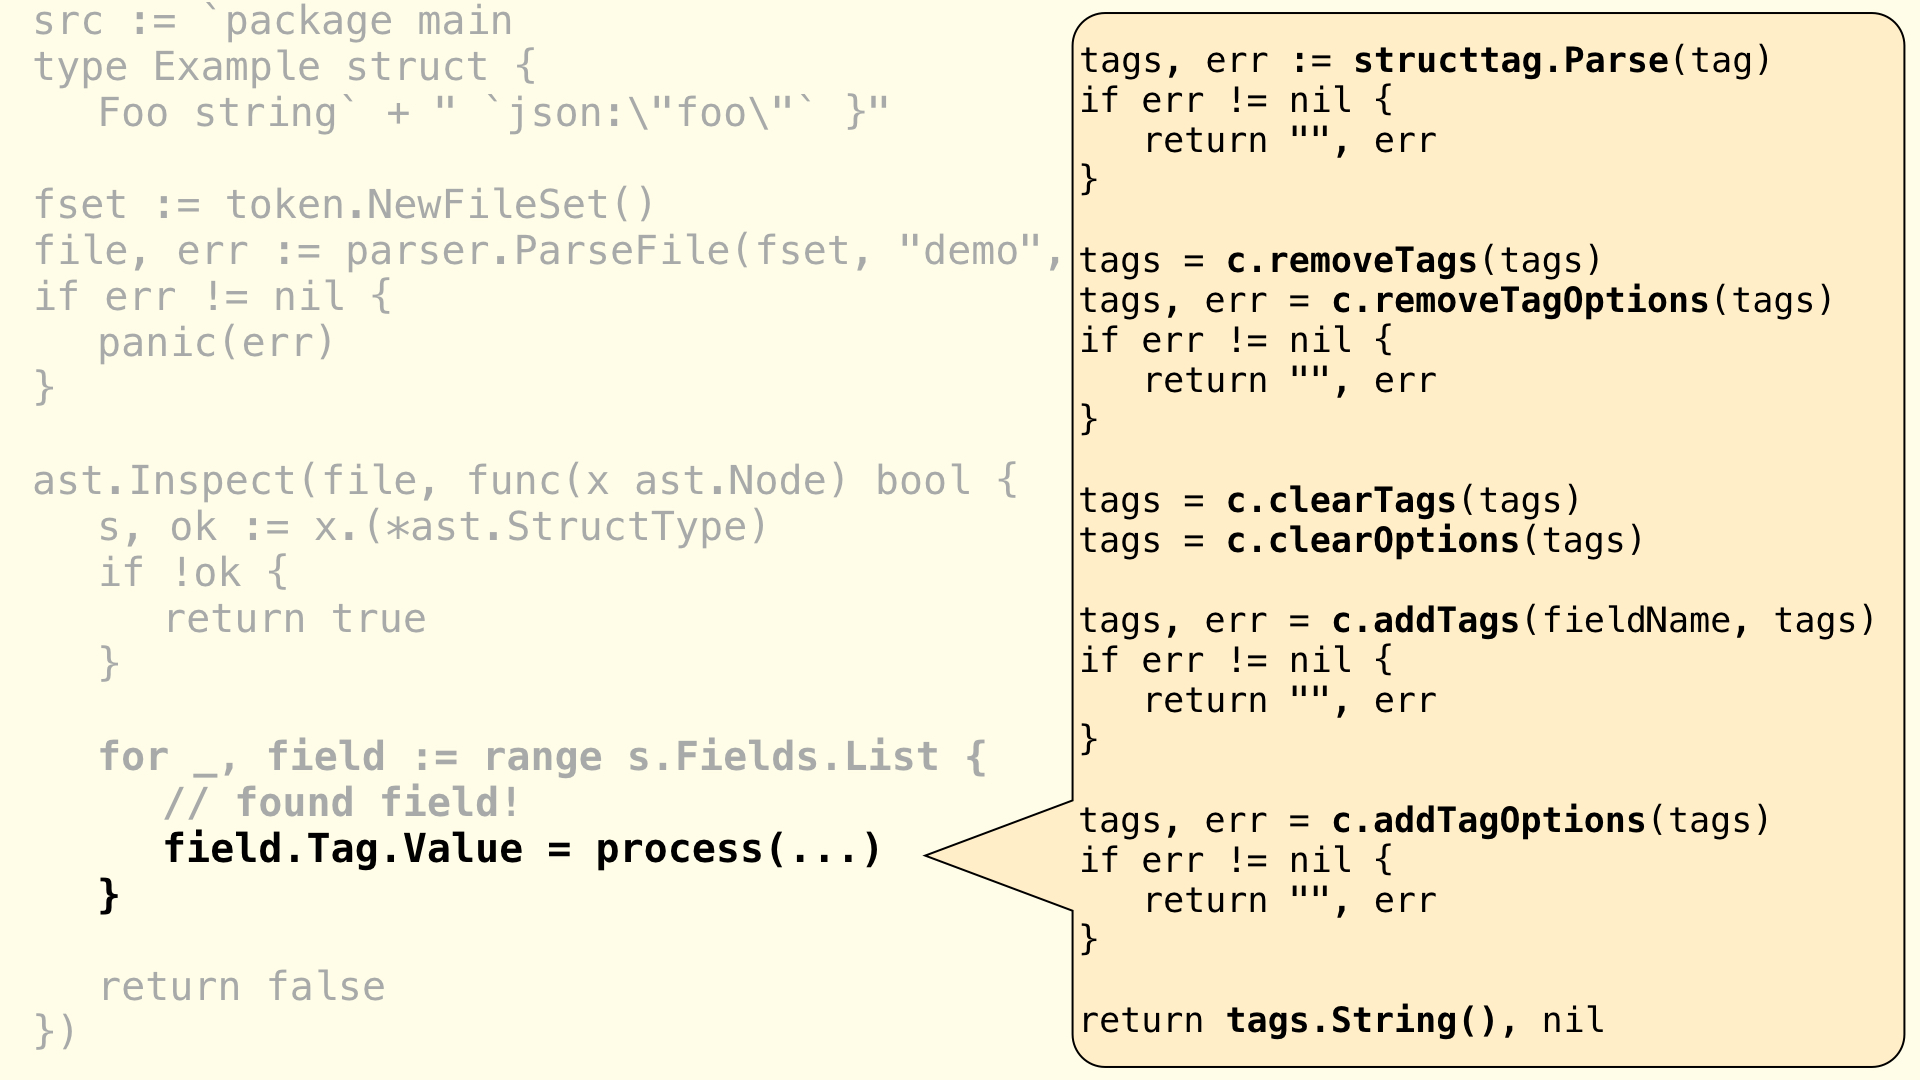 The **structtag** package is used to modify each individual field